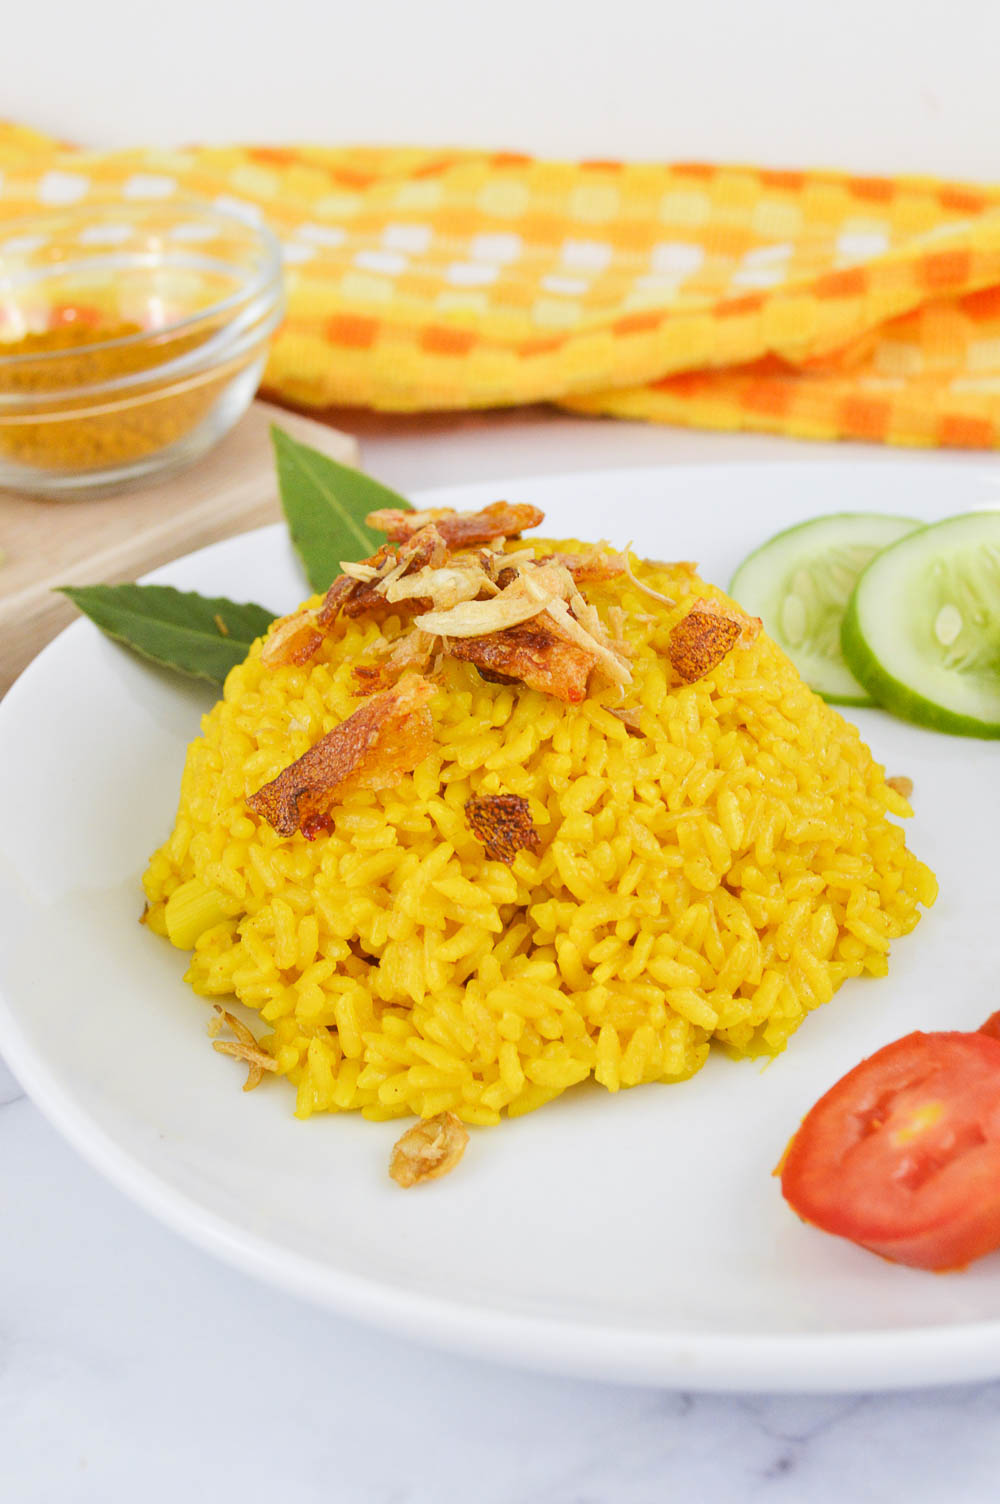 This Nasi Kuning (Indonesian Turmeric Rice) is rich and creamy, and the most authentic way to enjoy an Indonesian iconic dish.It's easy and simple to make with delicious flavor for your next quick meal. Today, learn how to make this turmeric rice with a rice cooker, on the stove, and in an Instant Pot.